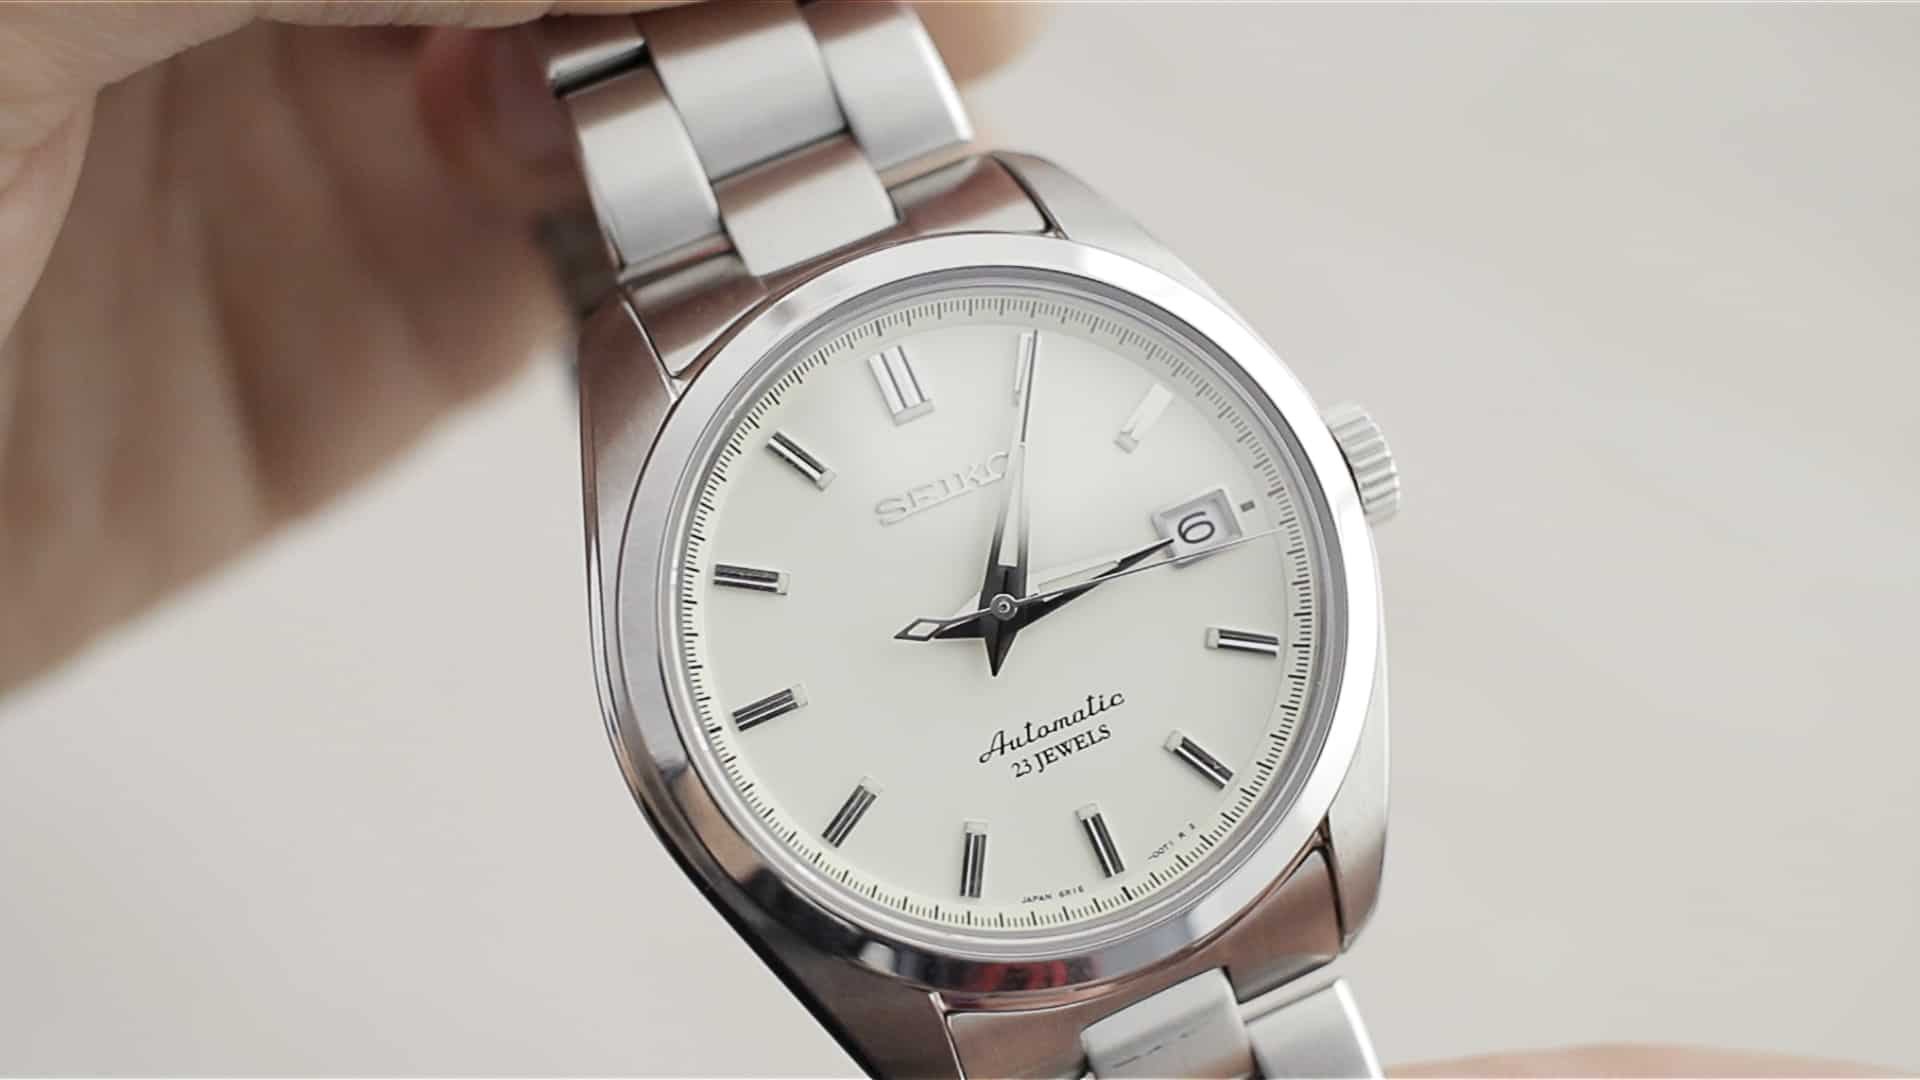 Seiko Sarb035 Review The Best Automatic Watch Under 500 The